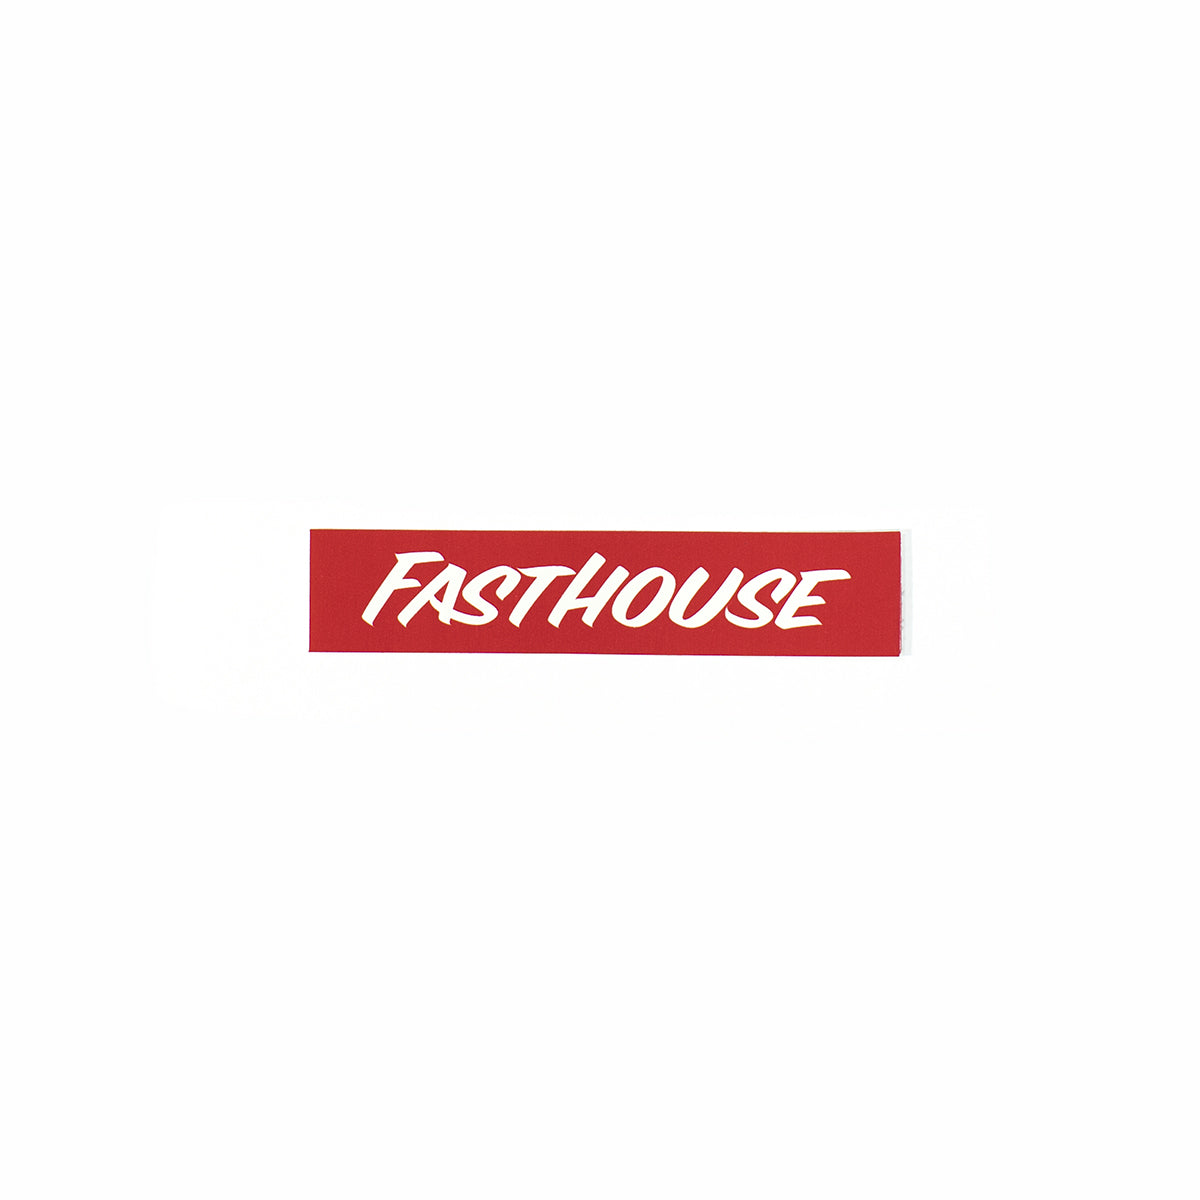 Fasthouse - Red Logo Sticker